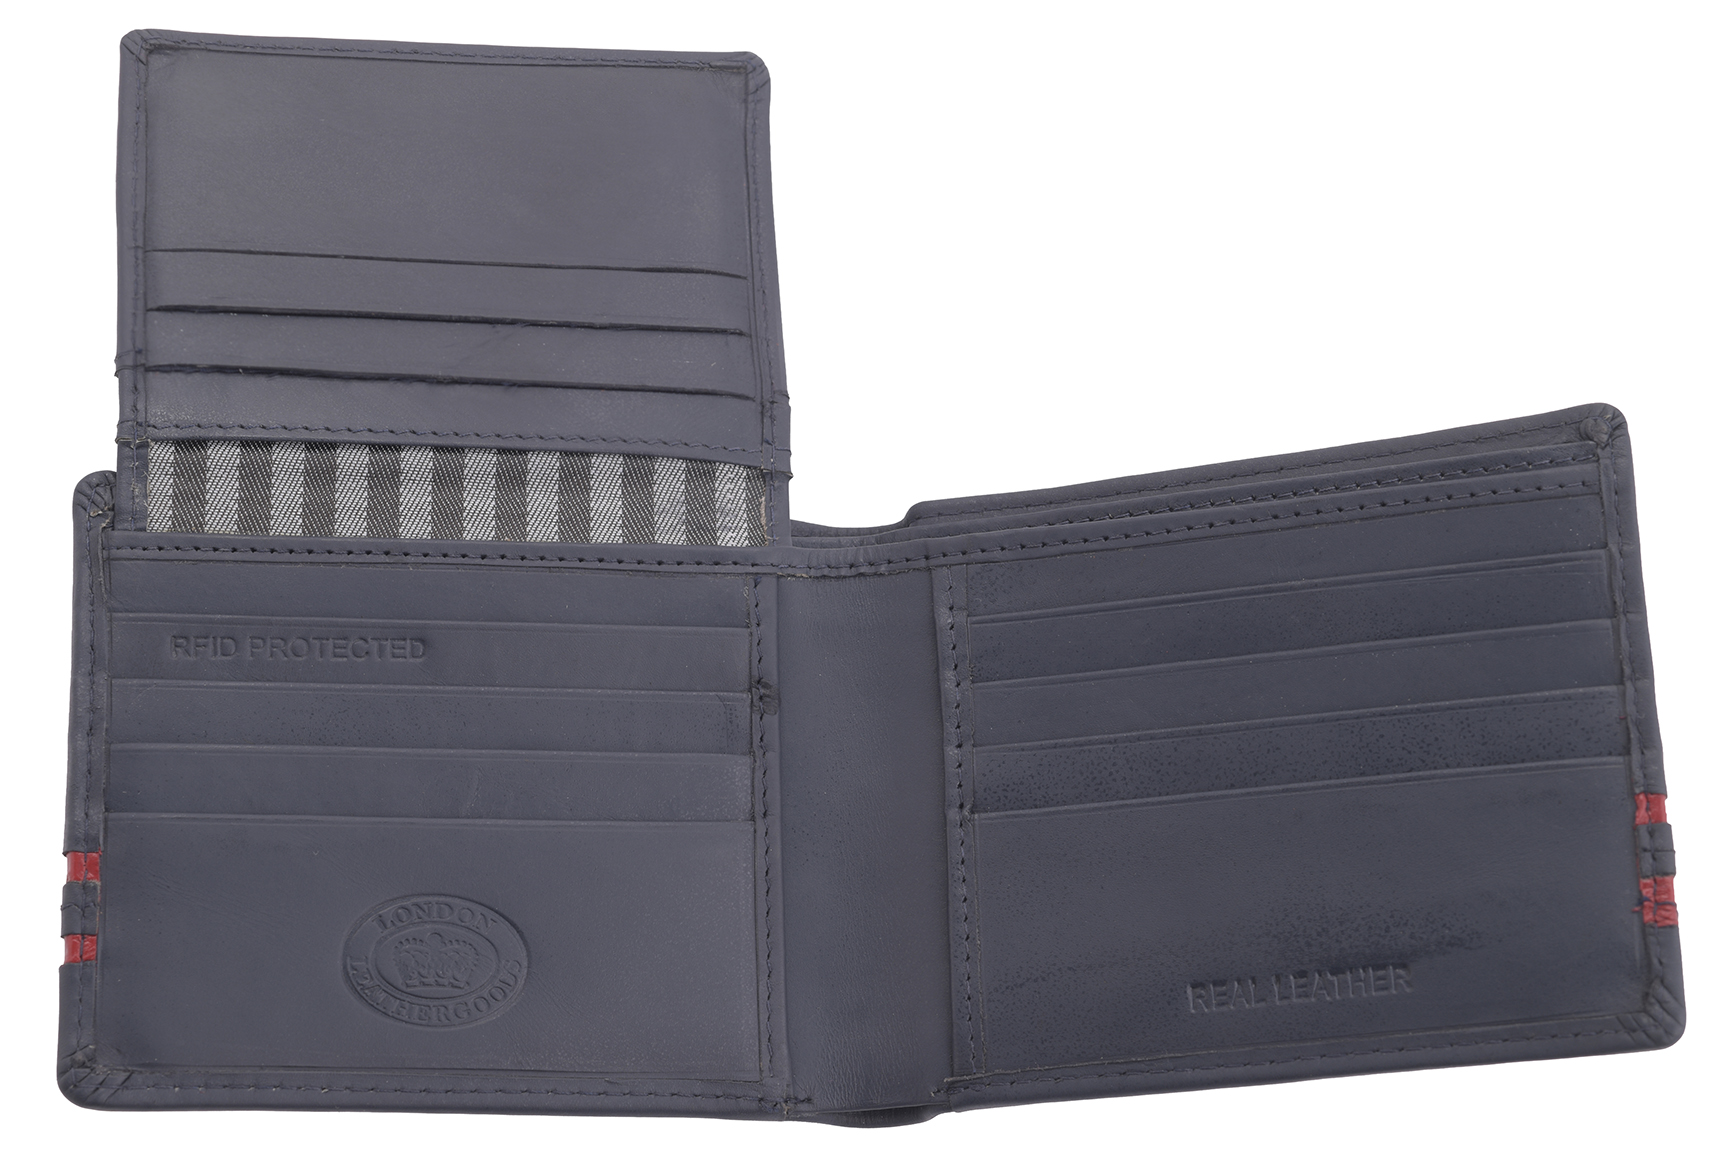 Mens Gents RFID Blocking Soft Real Leather Tab Wallet Purse Zipped Coin Holder